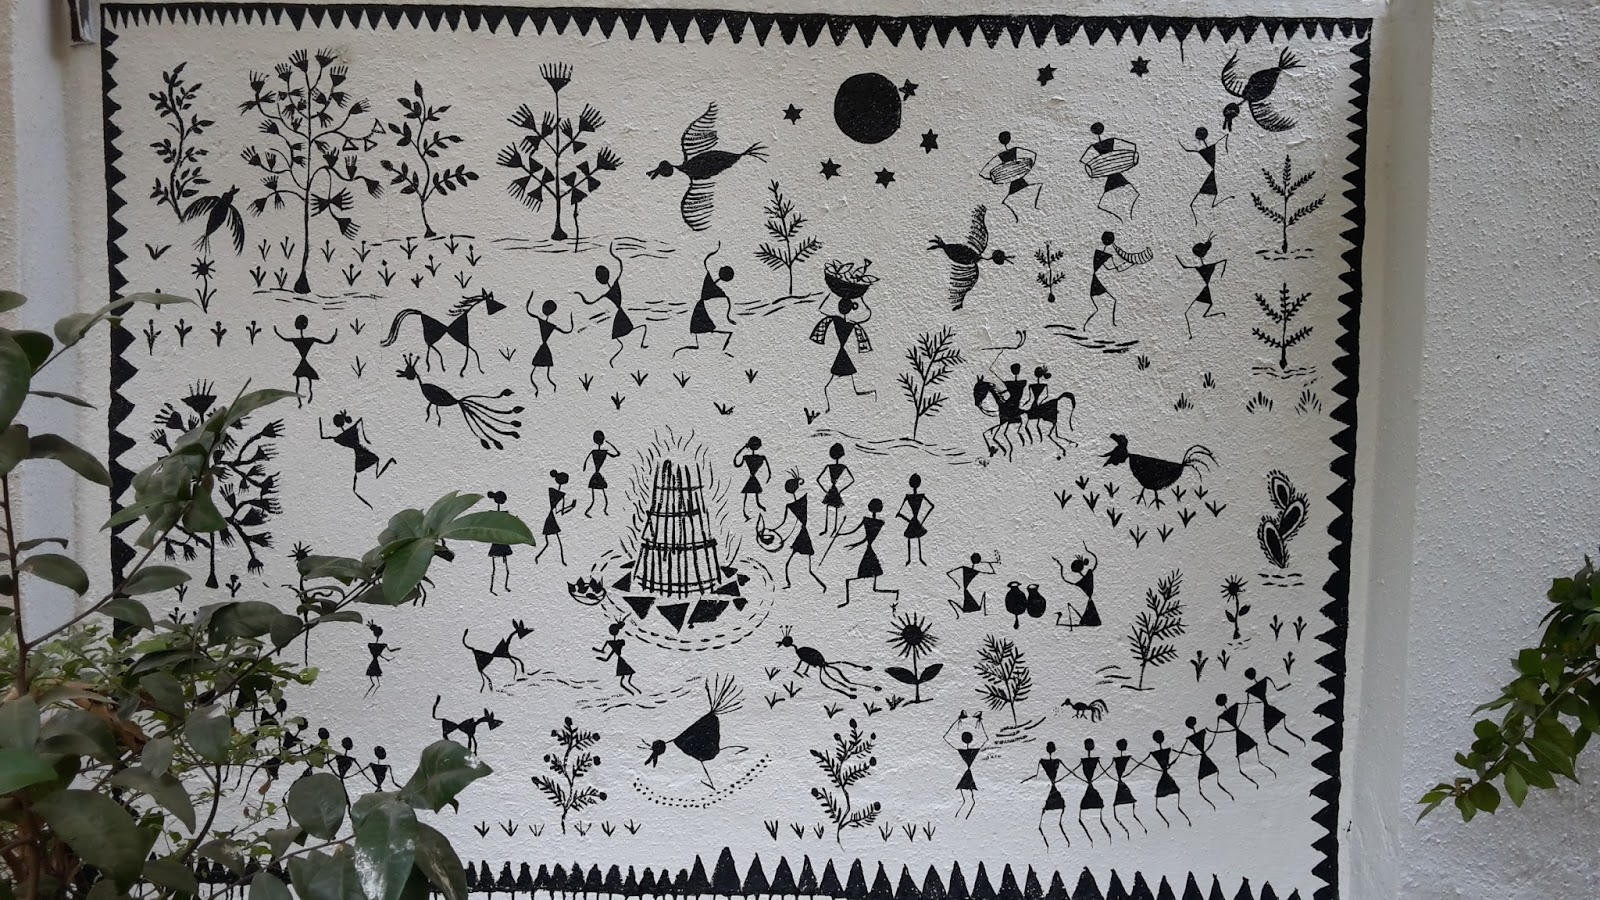 Completed Warli painting on the wall